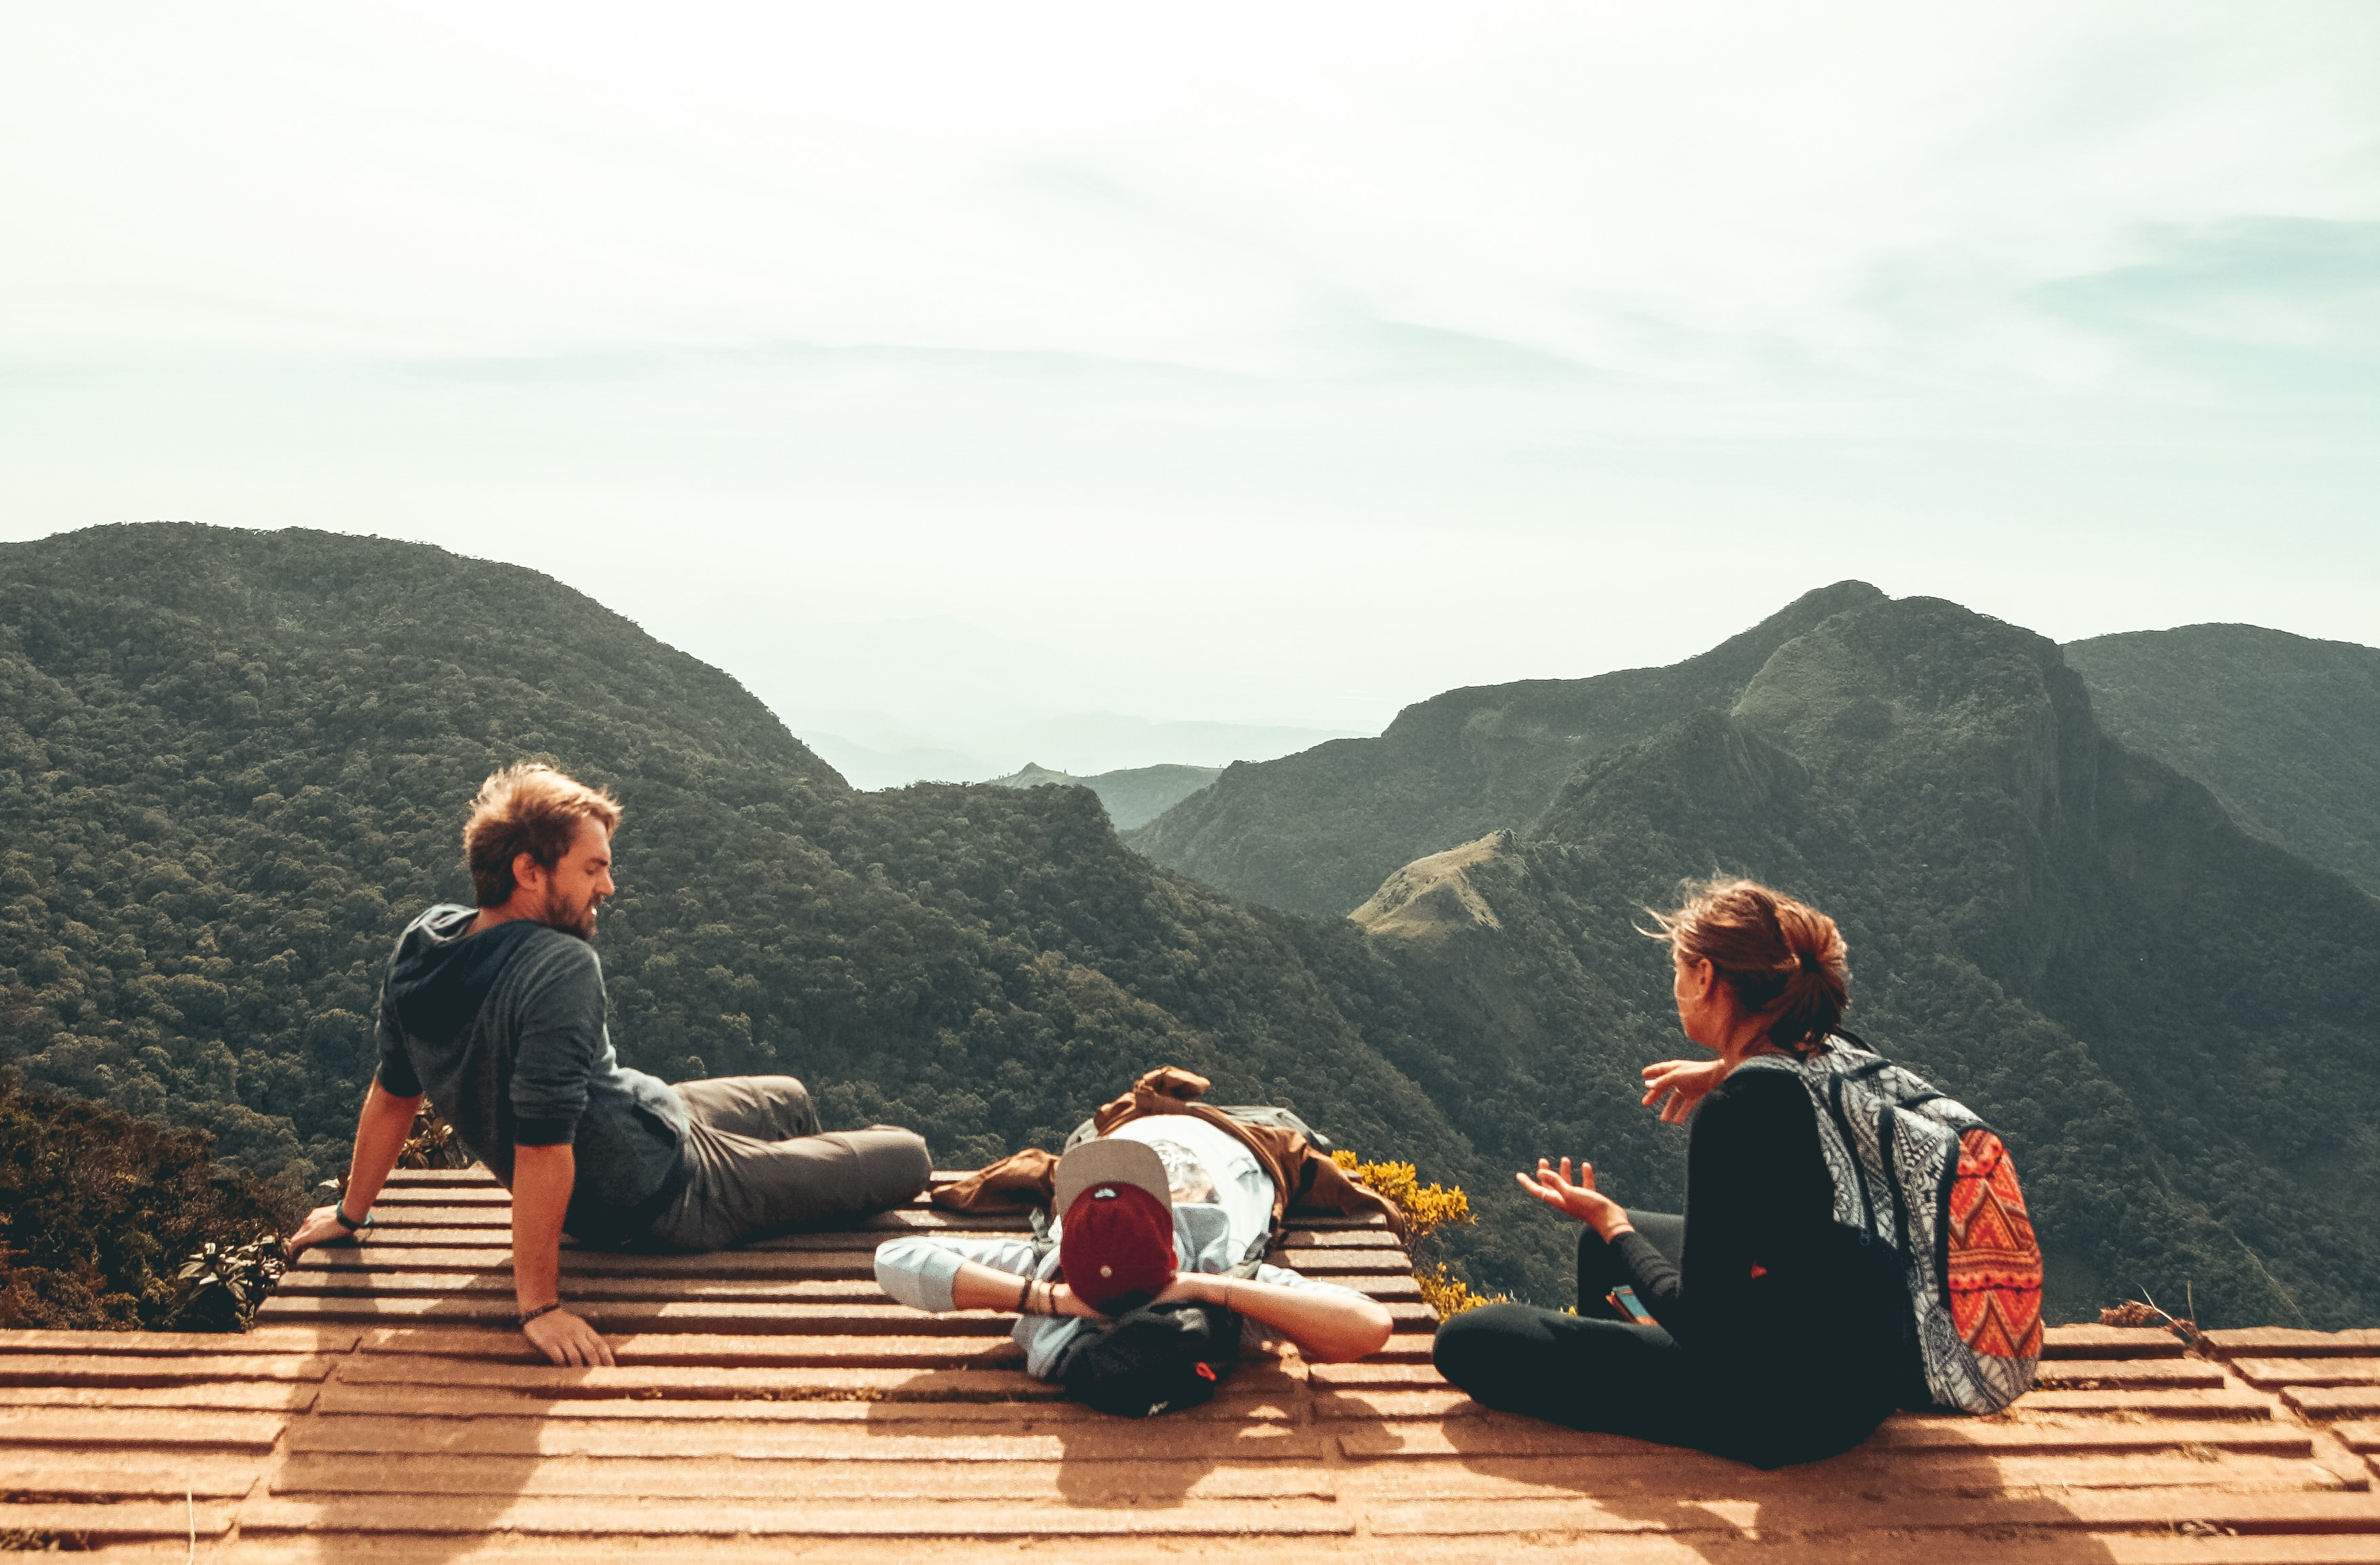 three people overlooking mountains